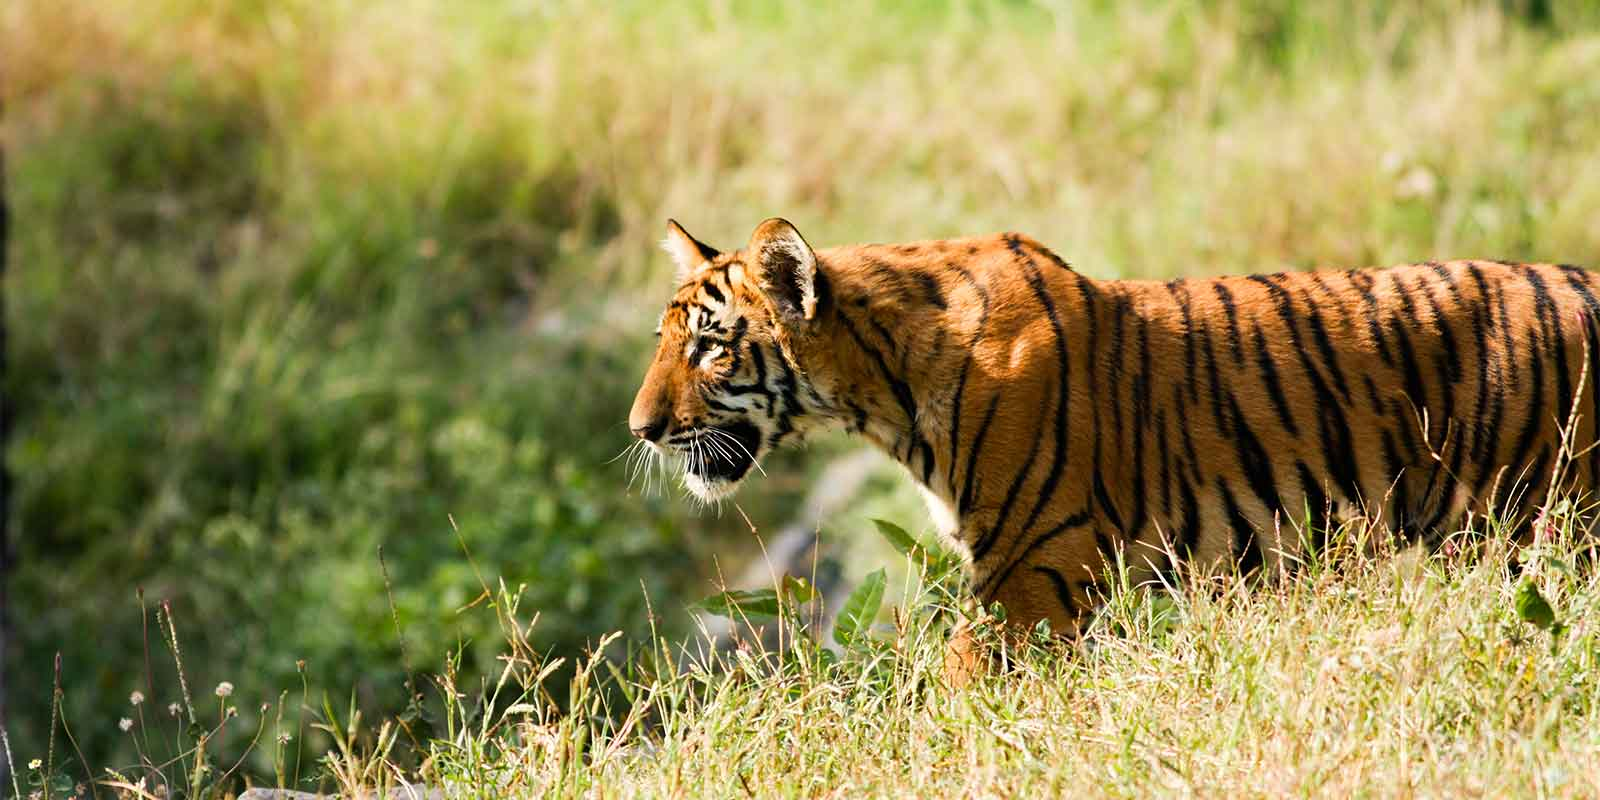 Young tiger in grass in Indian national park